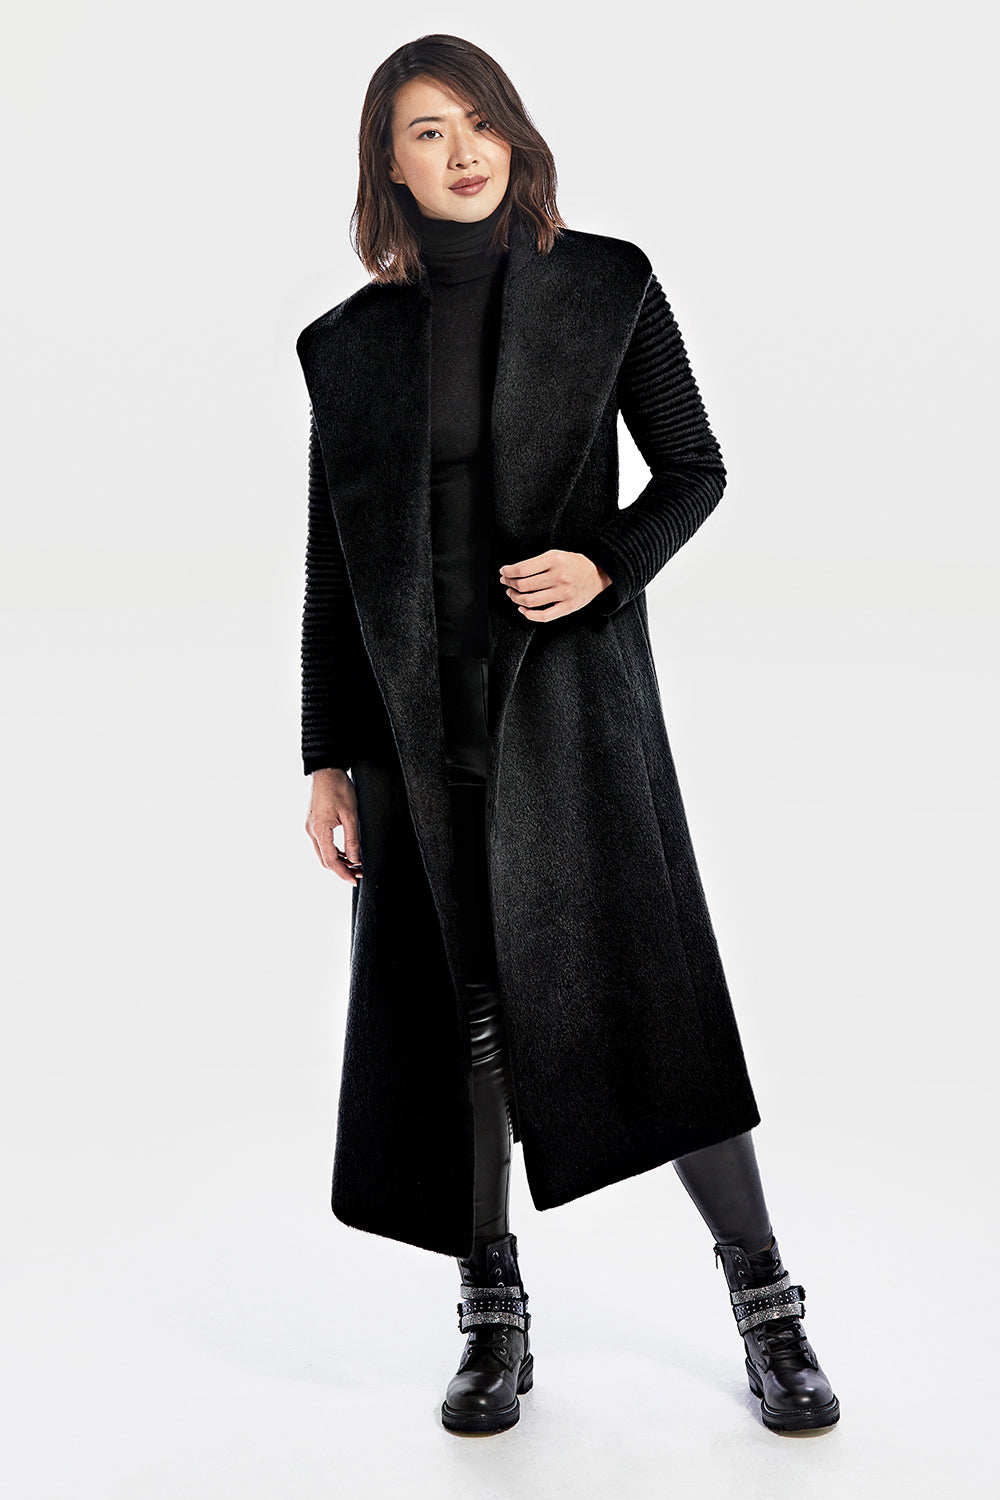 Sentaler Suri Alpaca Long Shawl Collar Wrap Coat with Ribbed Sleeves featured in Suri Alpaca and available in Black. Seen open.